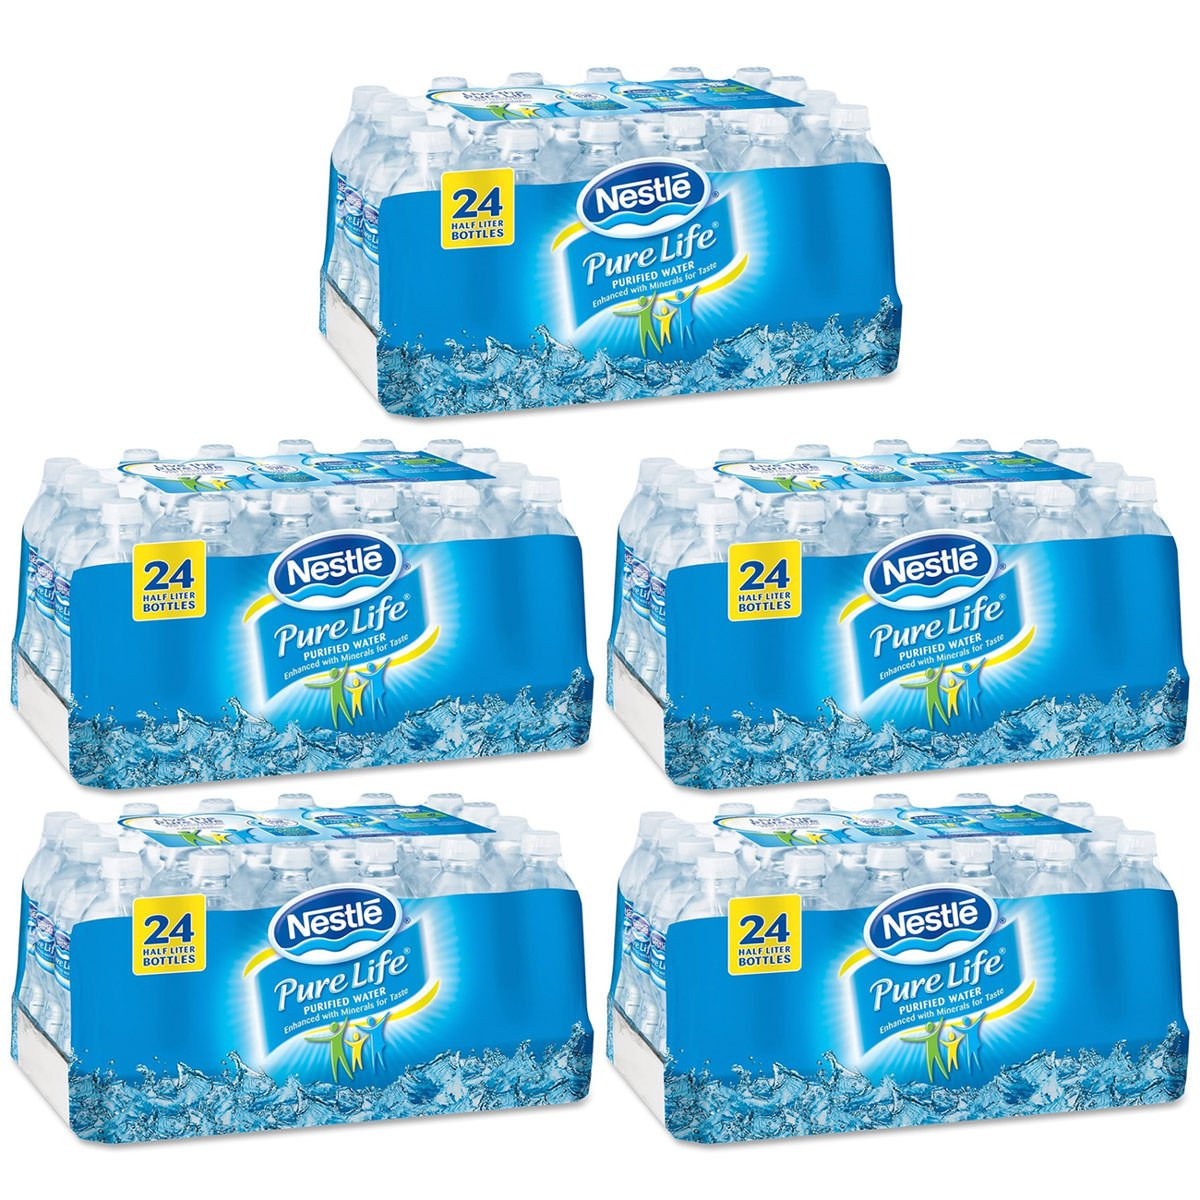 Nestle Pure Life Purified Water, 16.9 oz. Bottles, 5 Cases (24 Bottles)